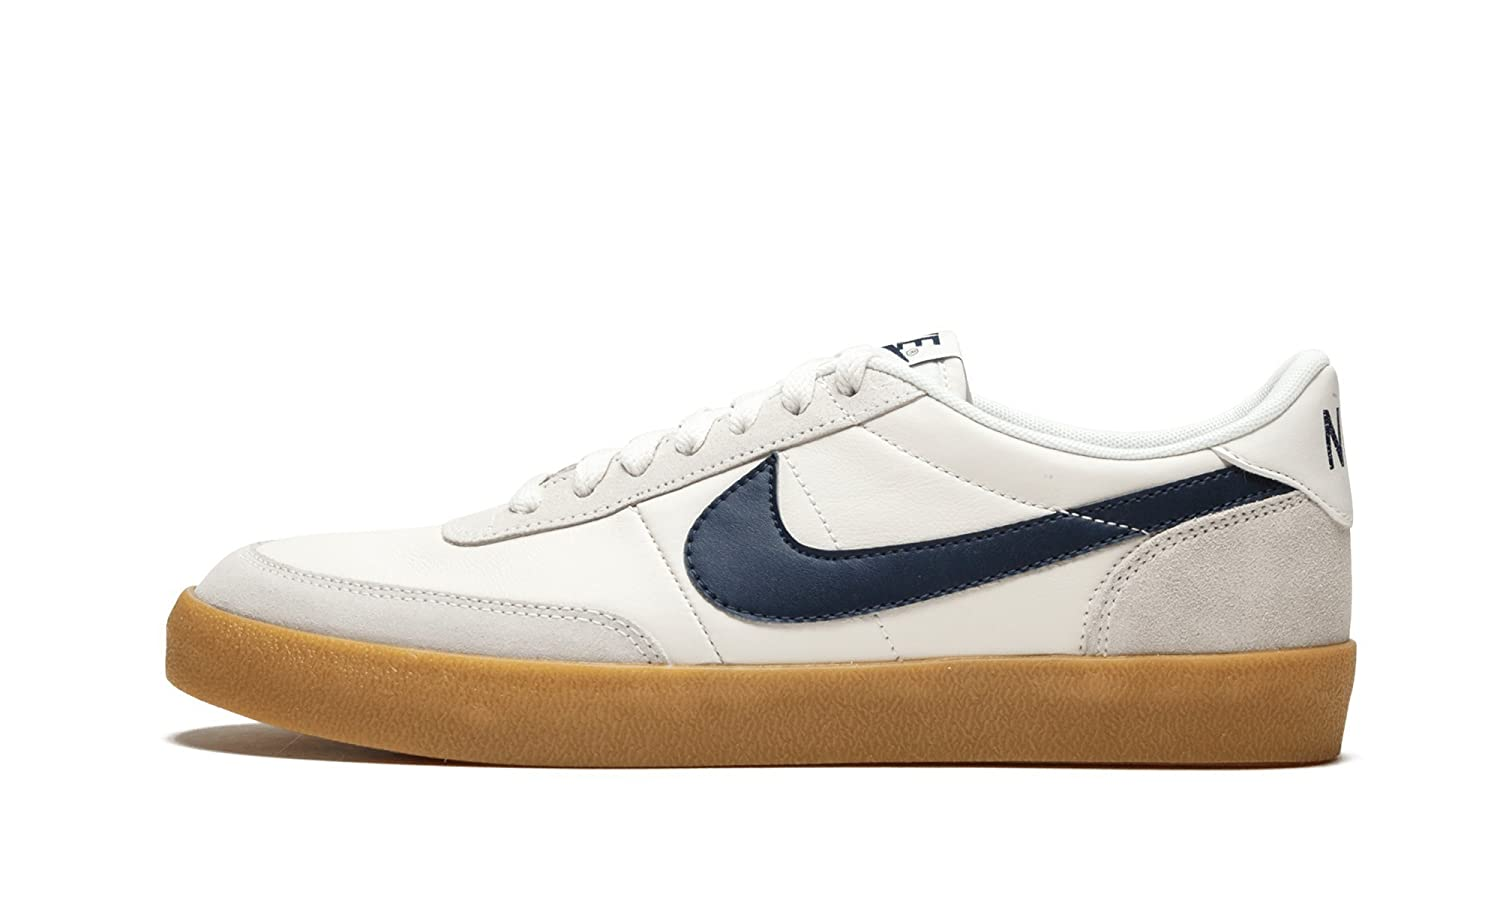 half off 0c3d2 f7719 Amazon.com   NIKE JCREW Killshot 2 Leather Sneaker Size 11.5   Fashion  Sneakers